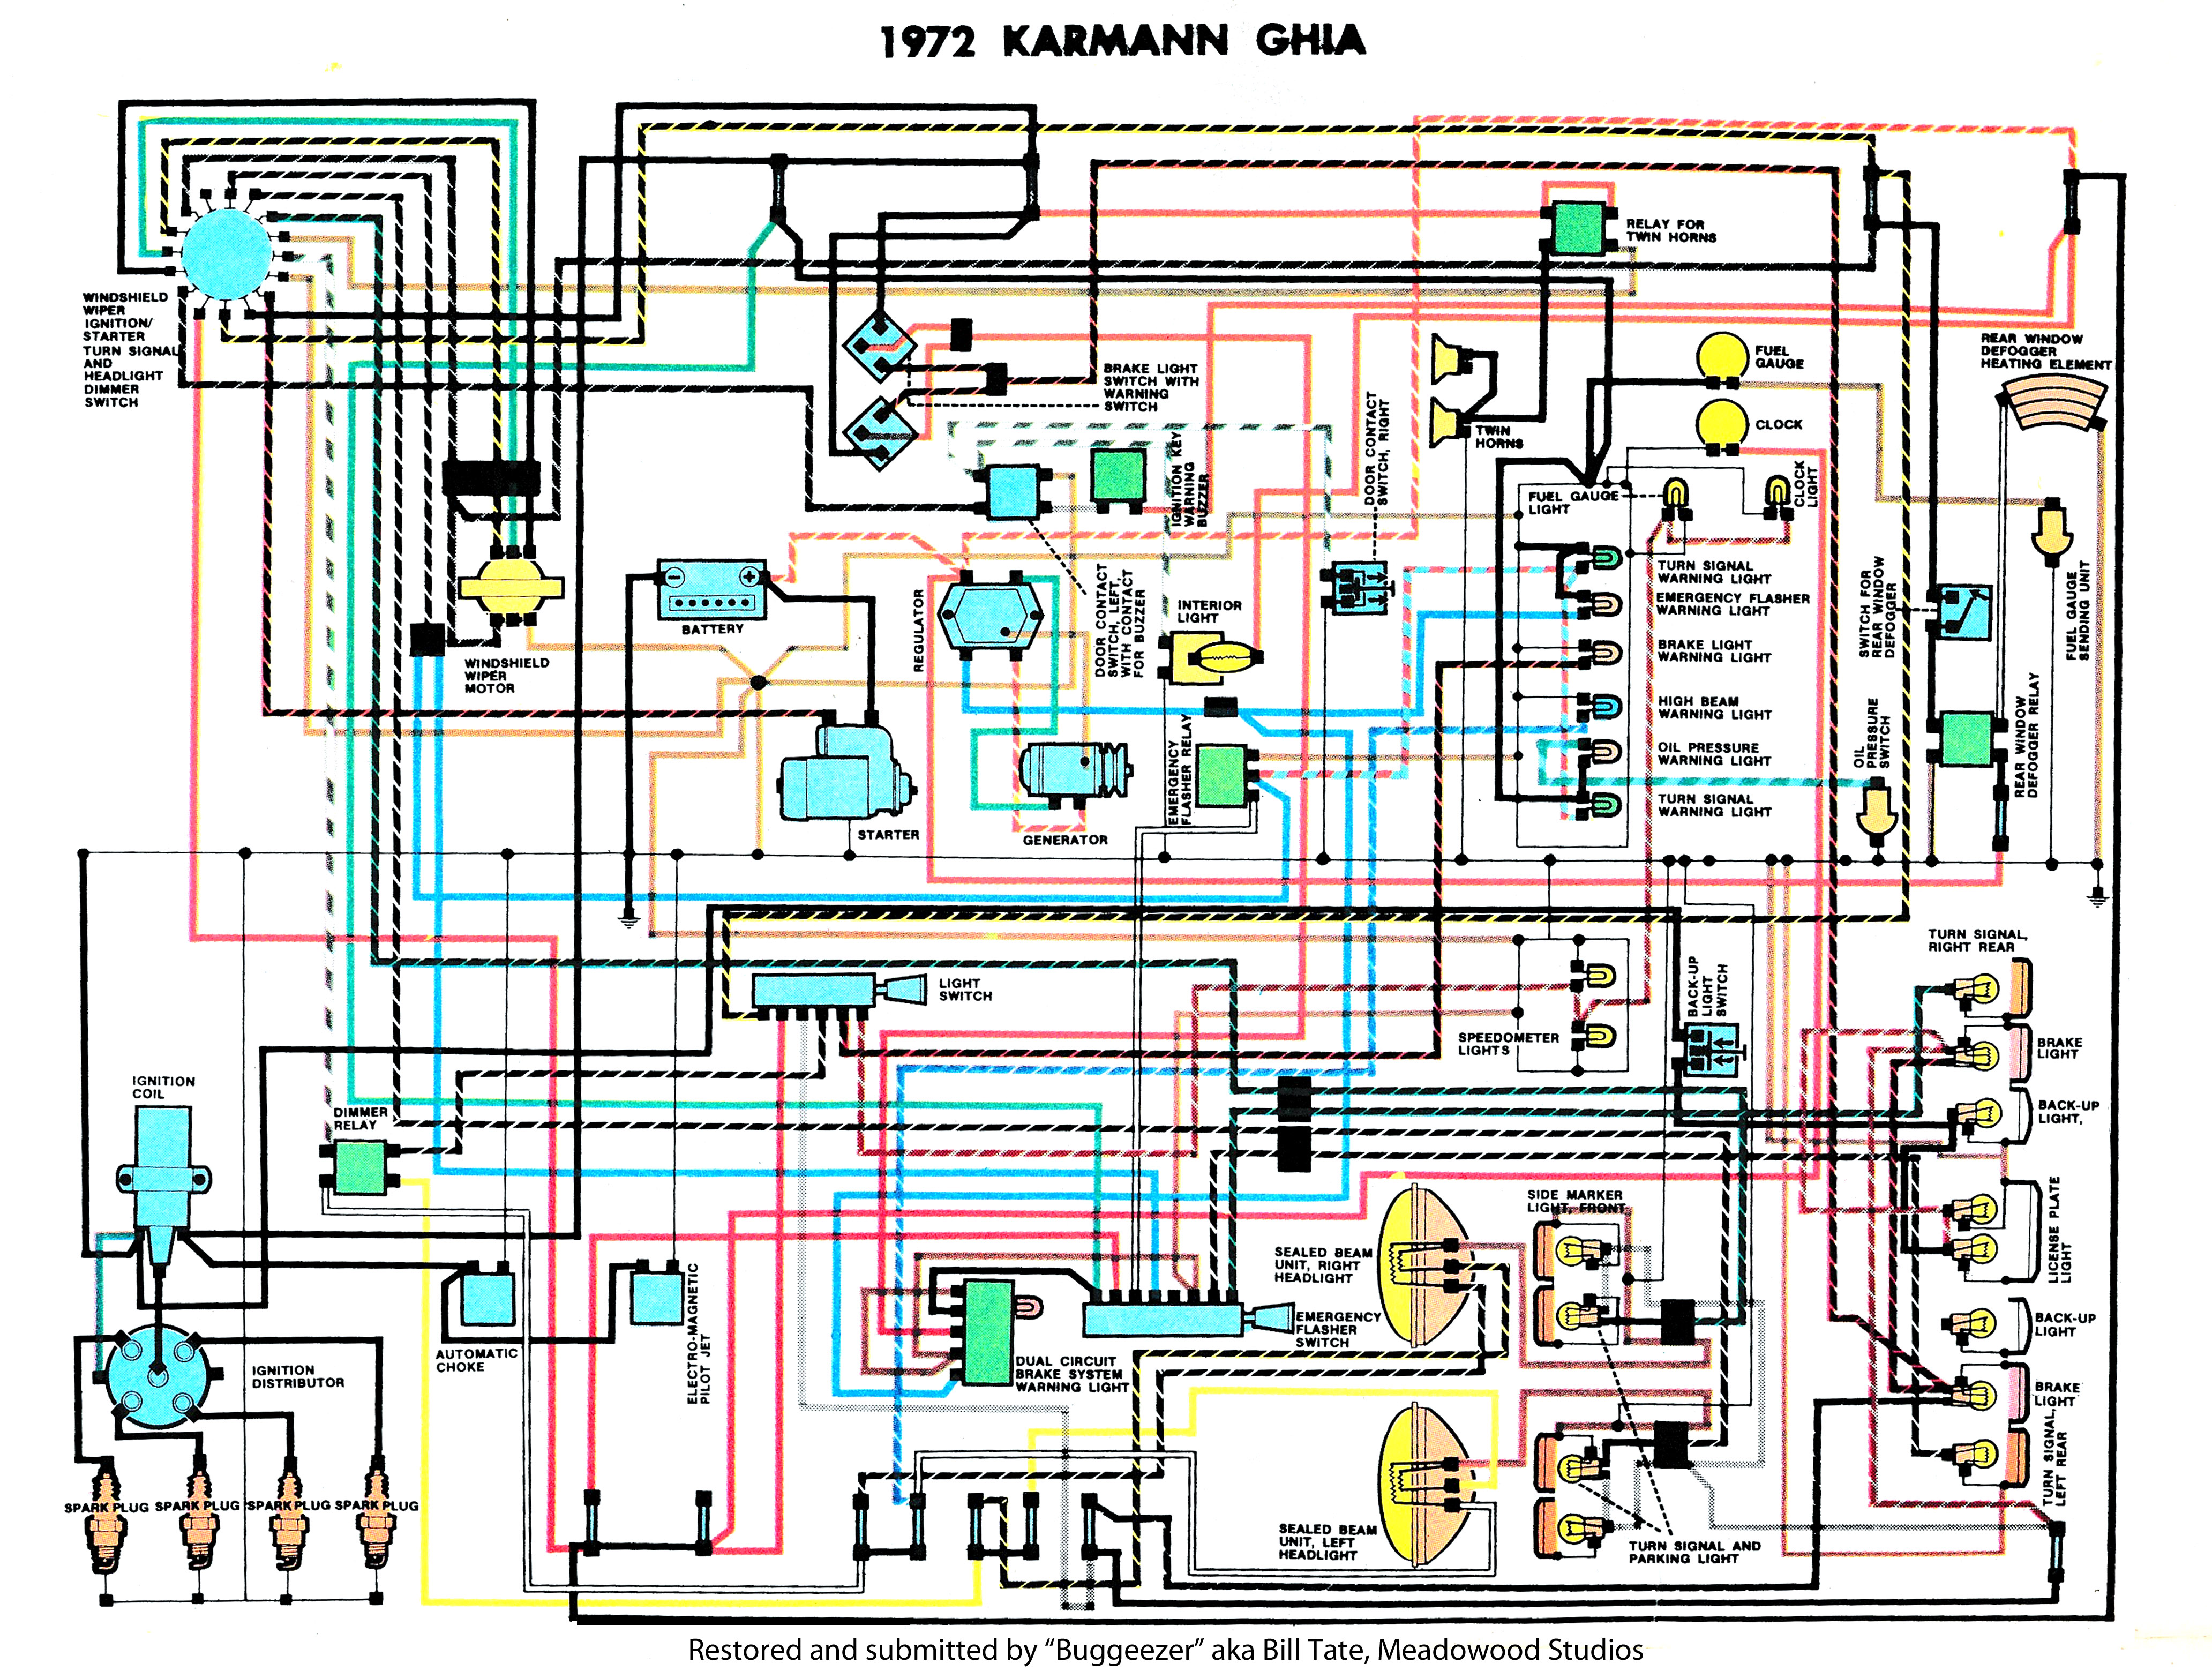 Ghia_1972_Clymers thesamba com karmann ghia wiring diagrams 1984 corvette wiring diagram schematic at mifinder.co